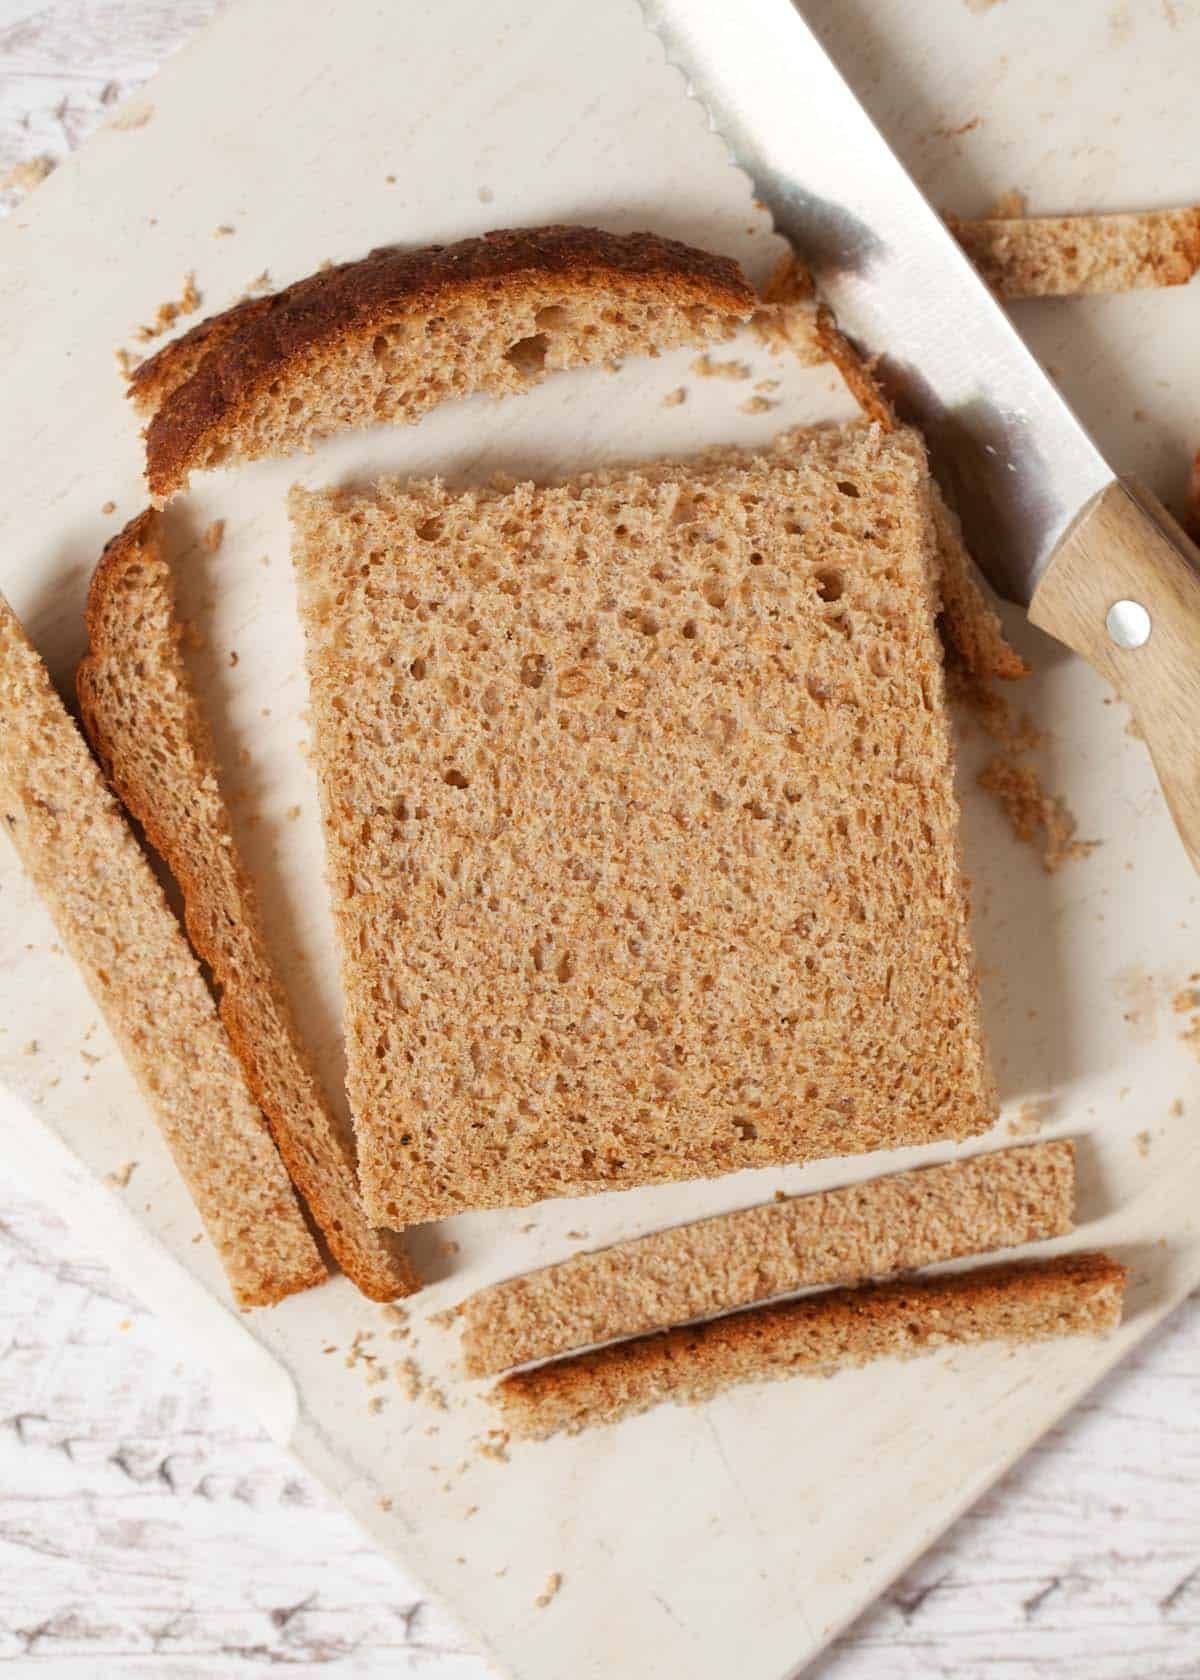 making sandwiches for afternoon tea: step one is cutting off the crusts